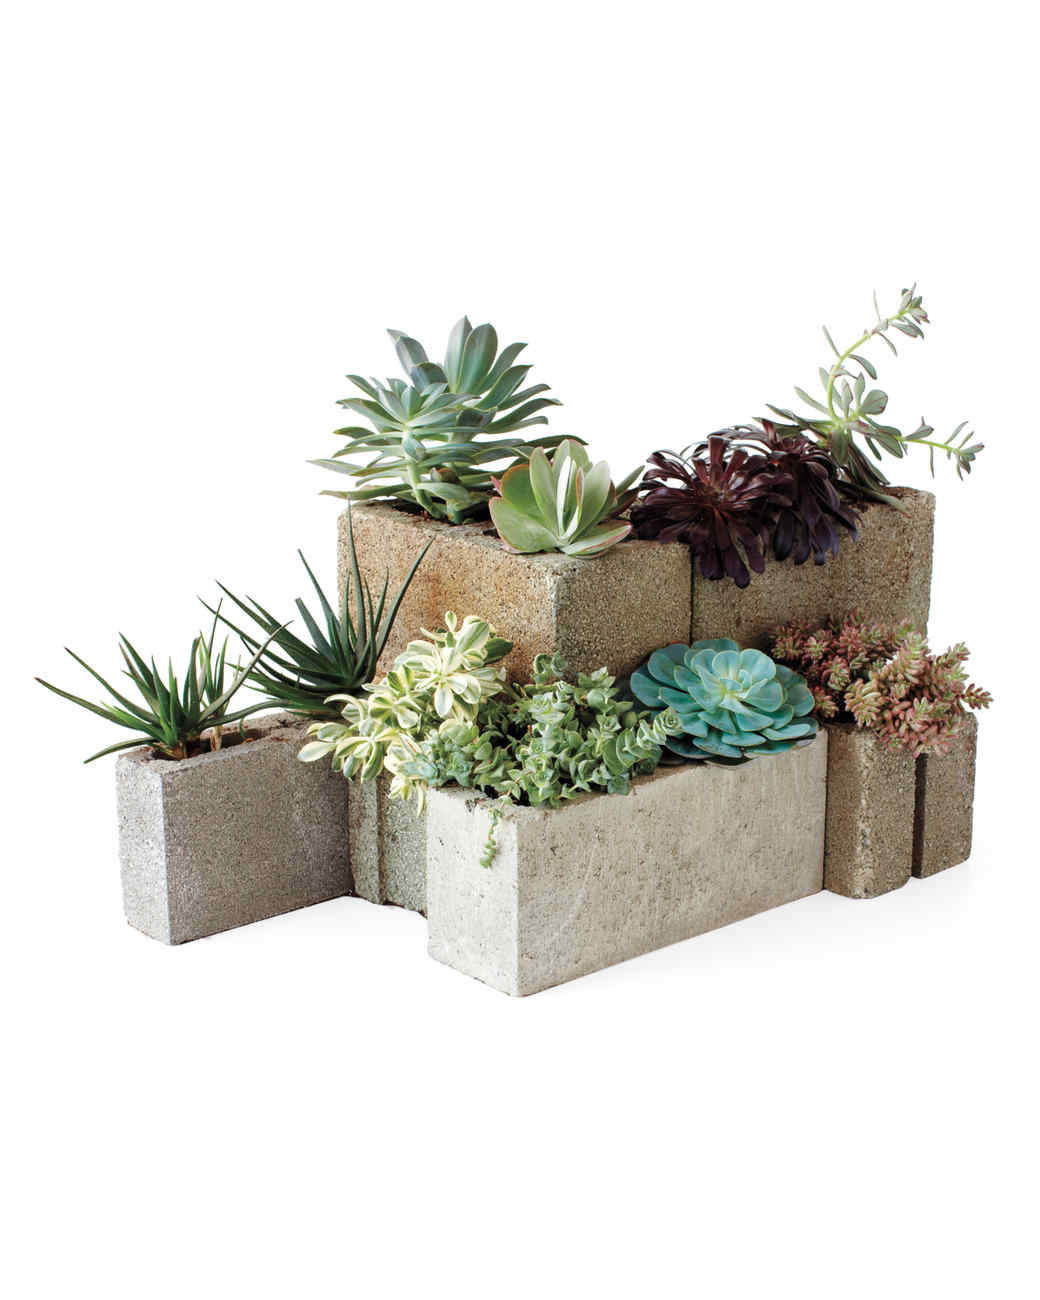 11 Creative Container Garden Ideas | Martha Stewart